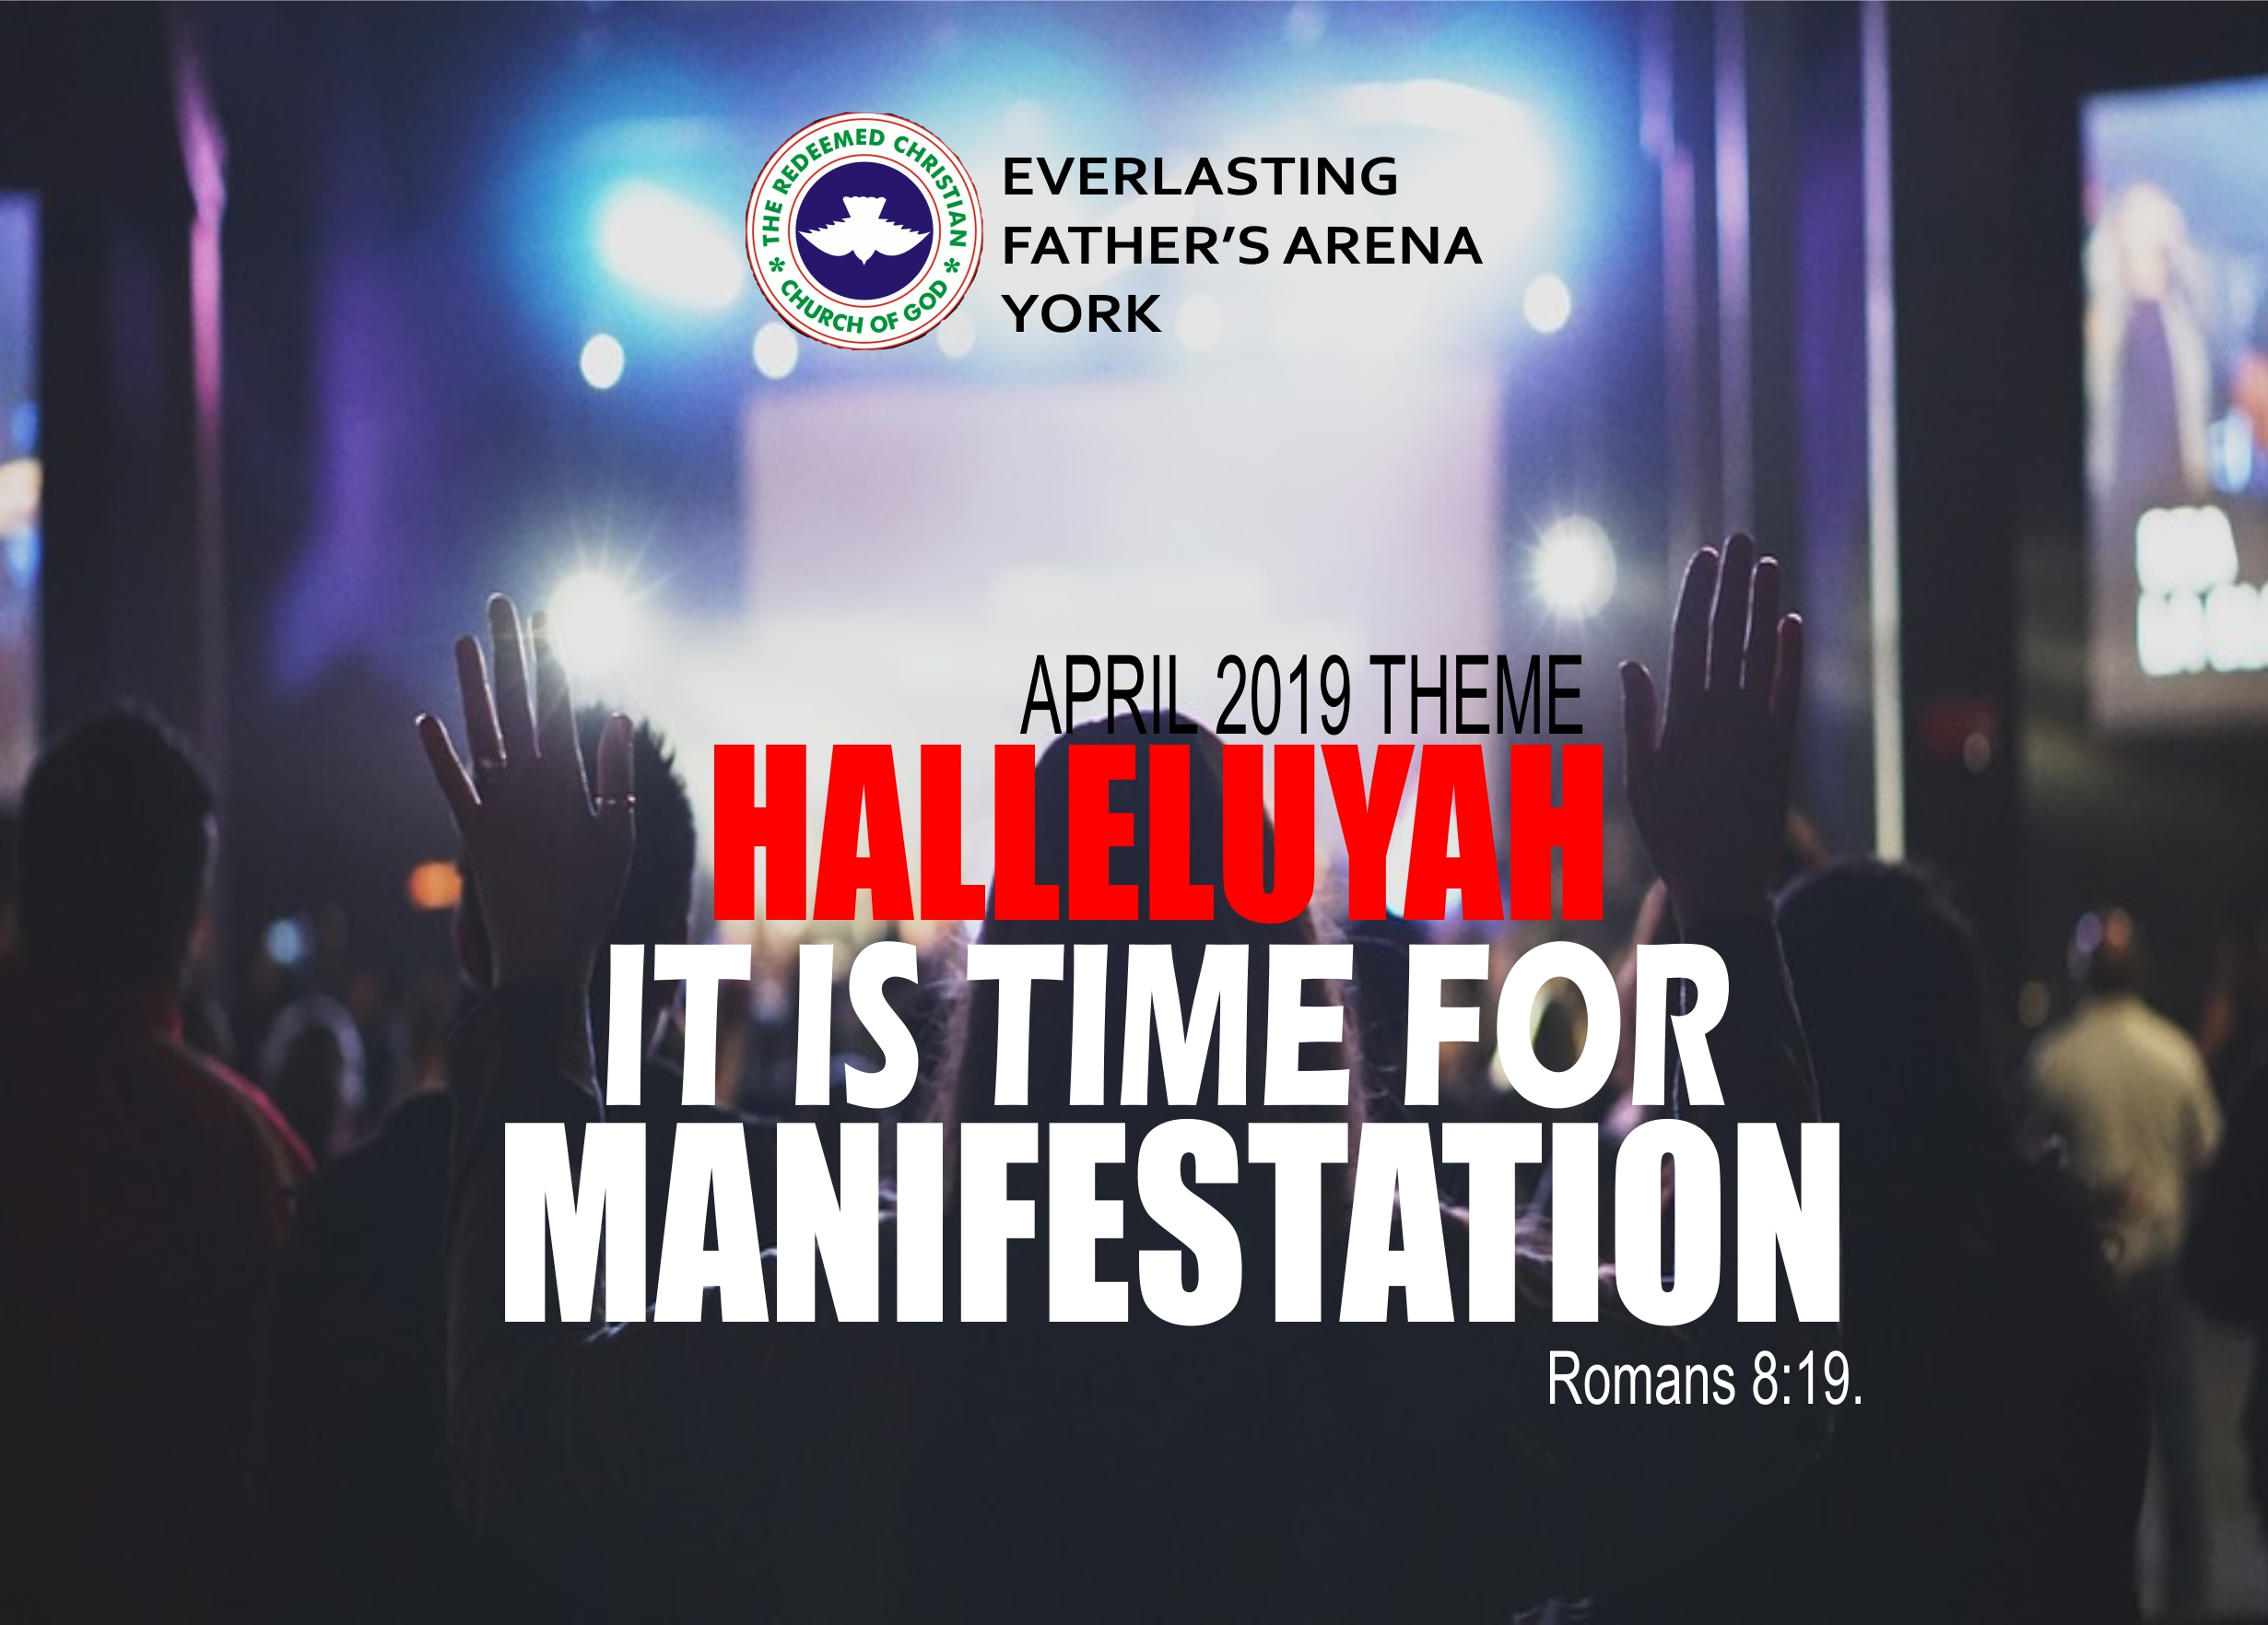 APRIL 2019 Theme : Halleluyah, It Is Time For Manifestation (Romans 8:19)